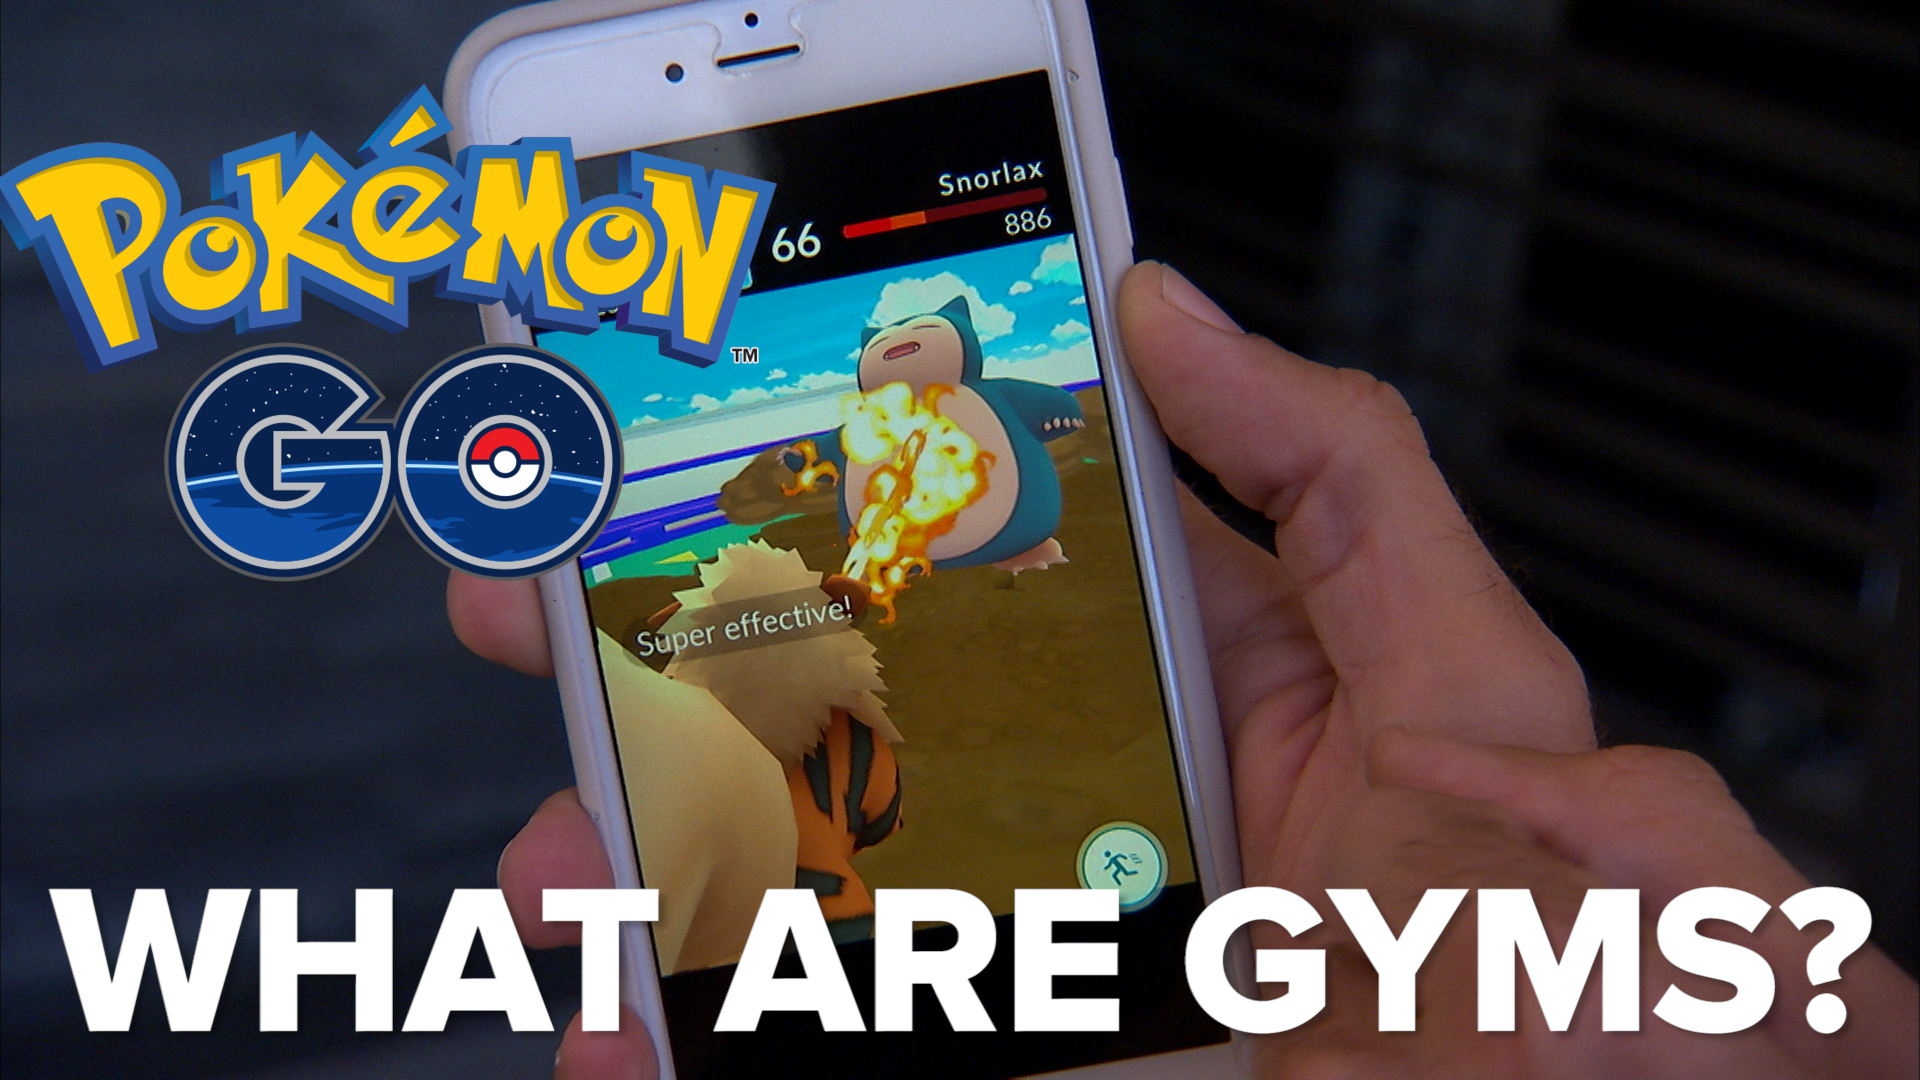 Video: Pokemon Go: What are gyms?